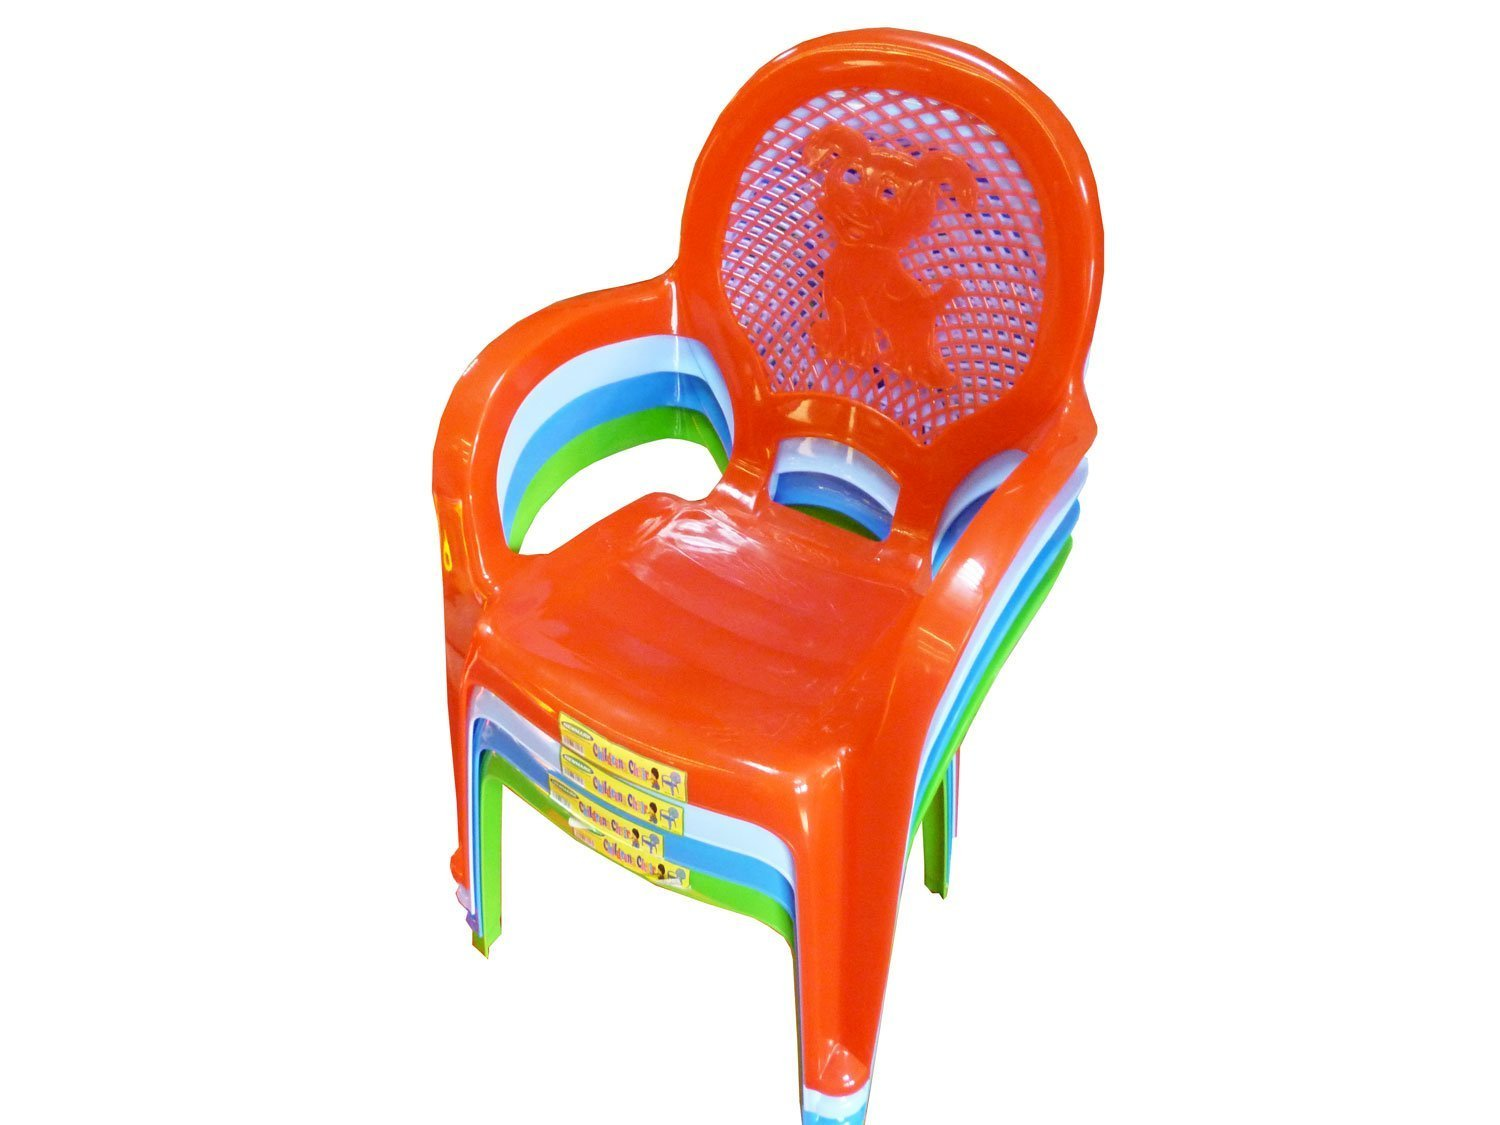 Childrens Kids Plastic Chair / Chairs with Puppy Designed Back - Available in Pink, Red, Green, Blue, Yellow - Choose Your Colour! (Blue) HomeWareNeeds